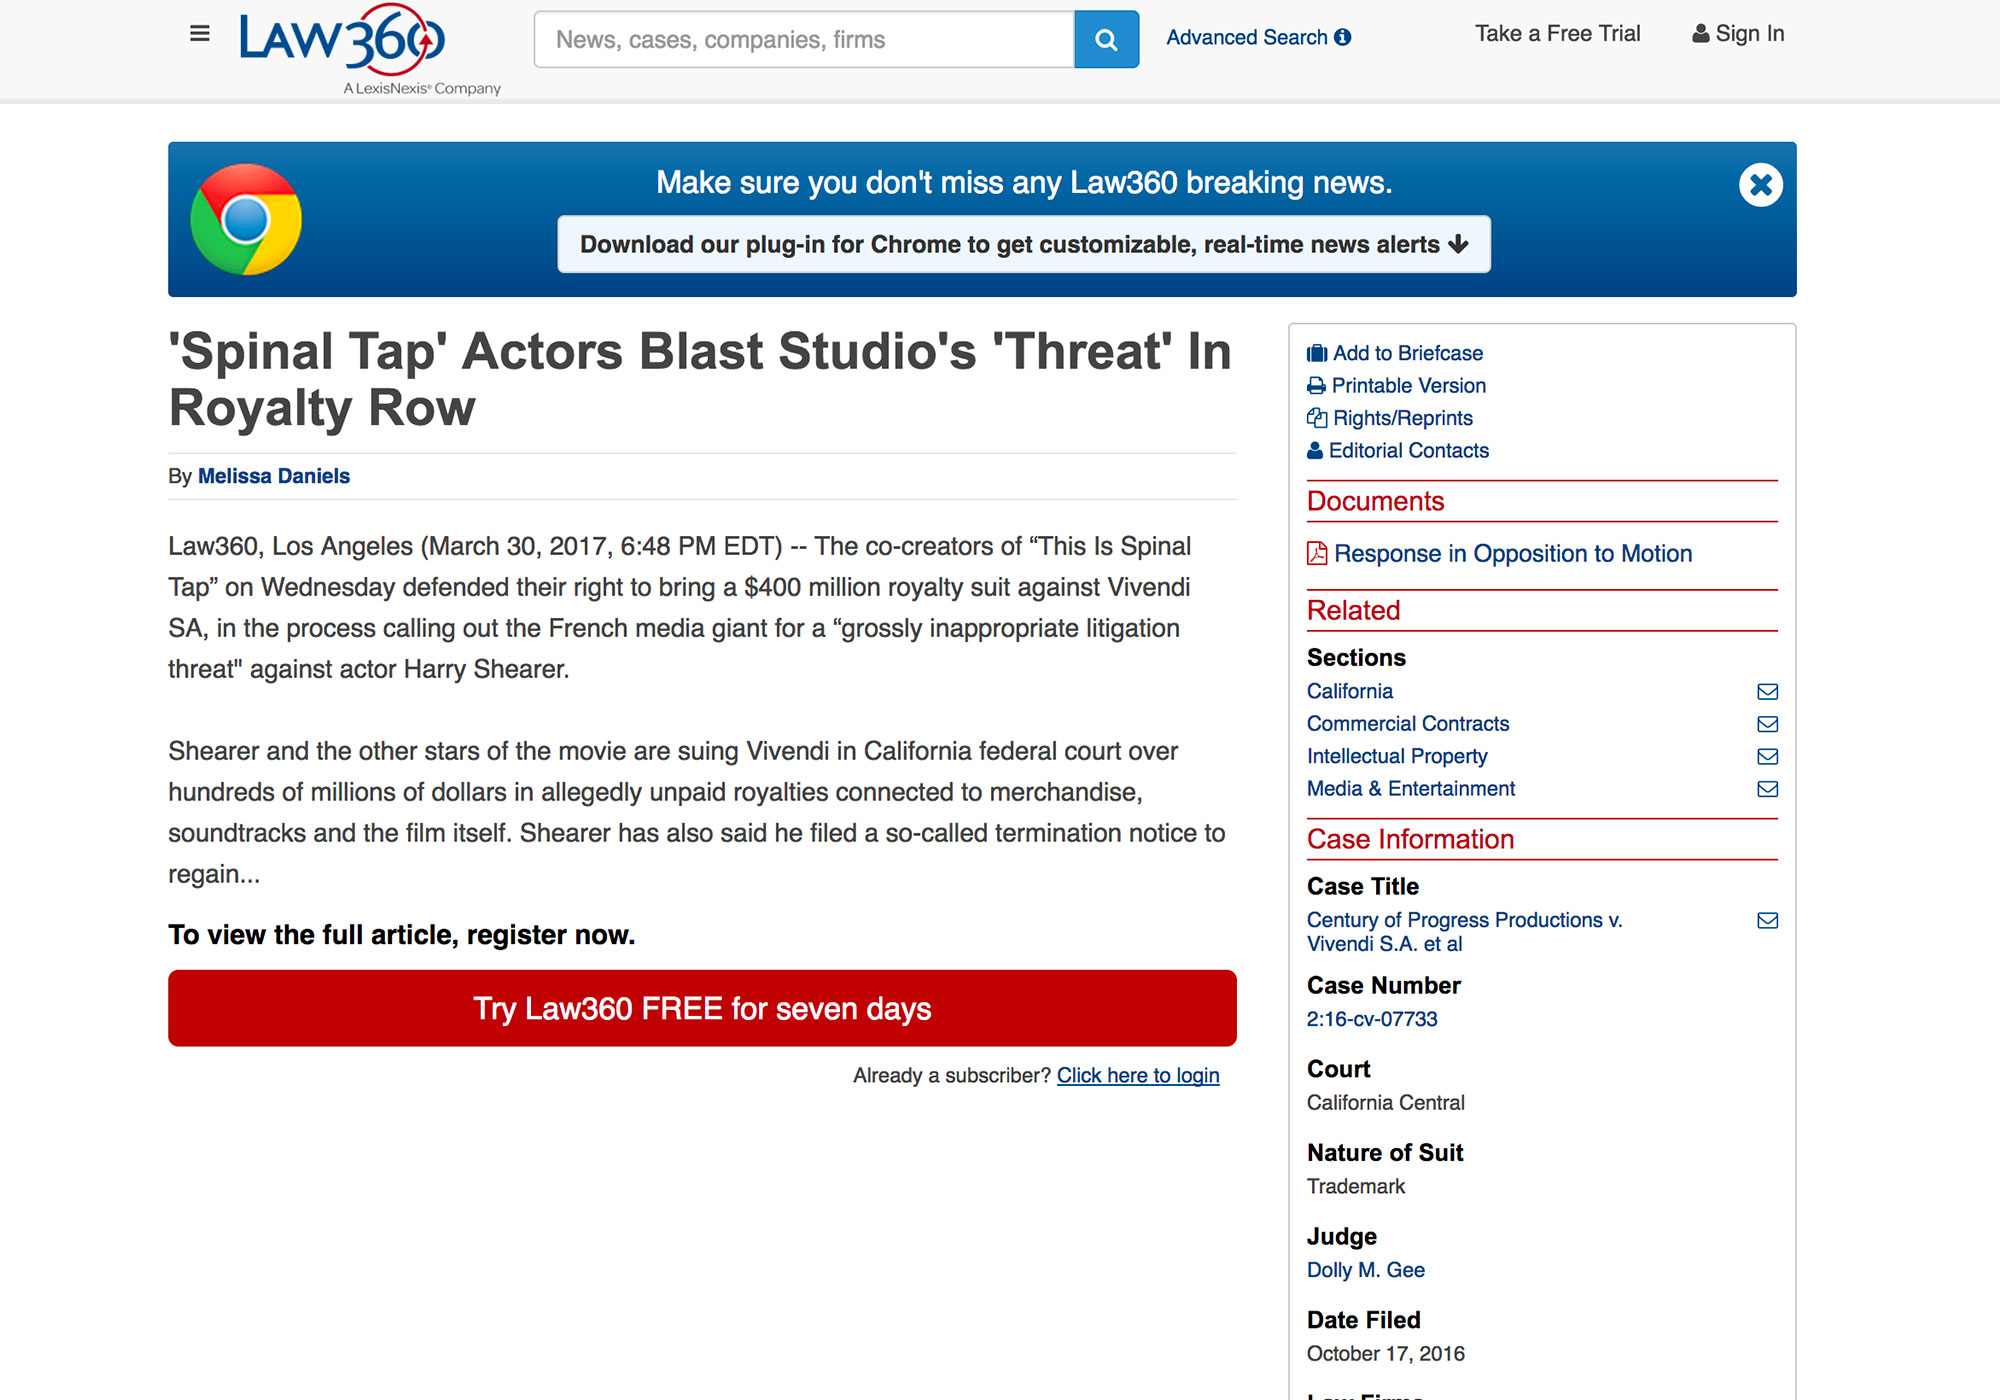 Fairness Rocks News 'Spinal Tap' Actors Blast Studio's 'Threat' In Royalty Row